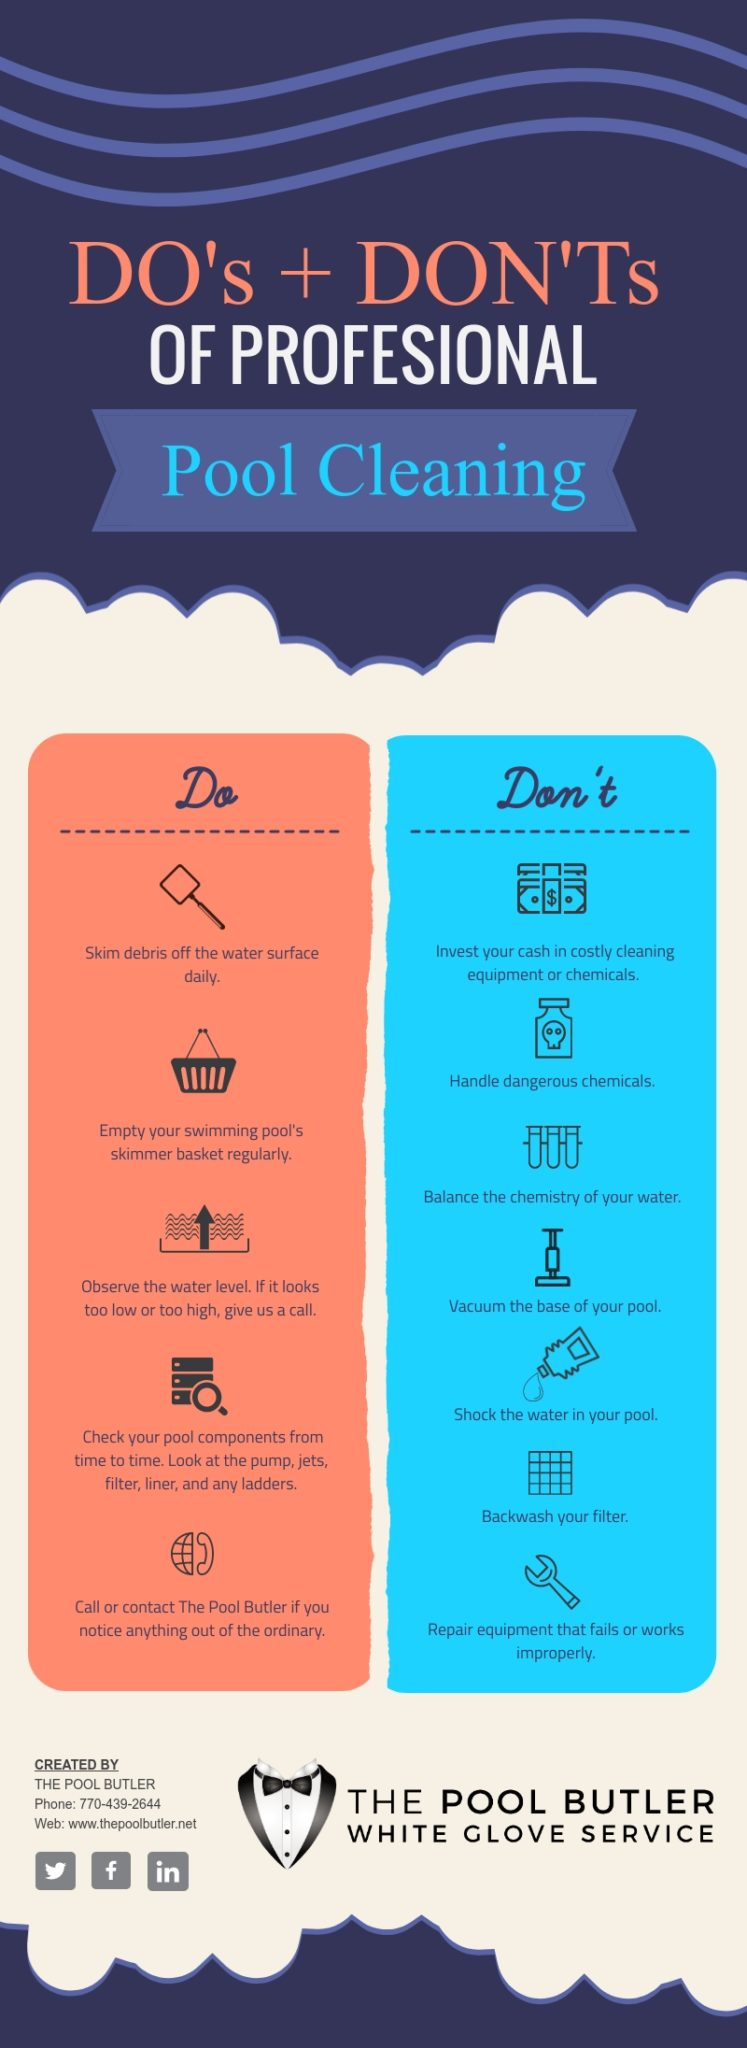 The DO's & DON'Ts of Professional Swimming Pool Cleaning [infographic]